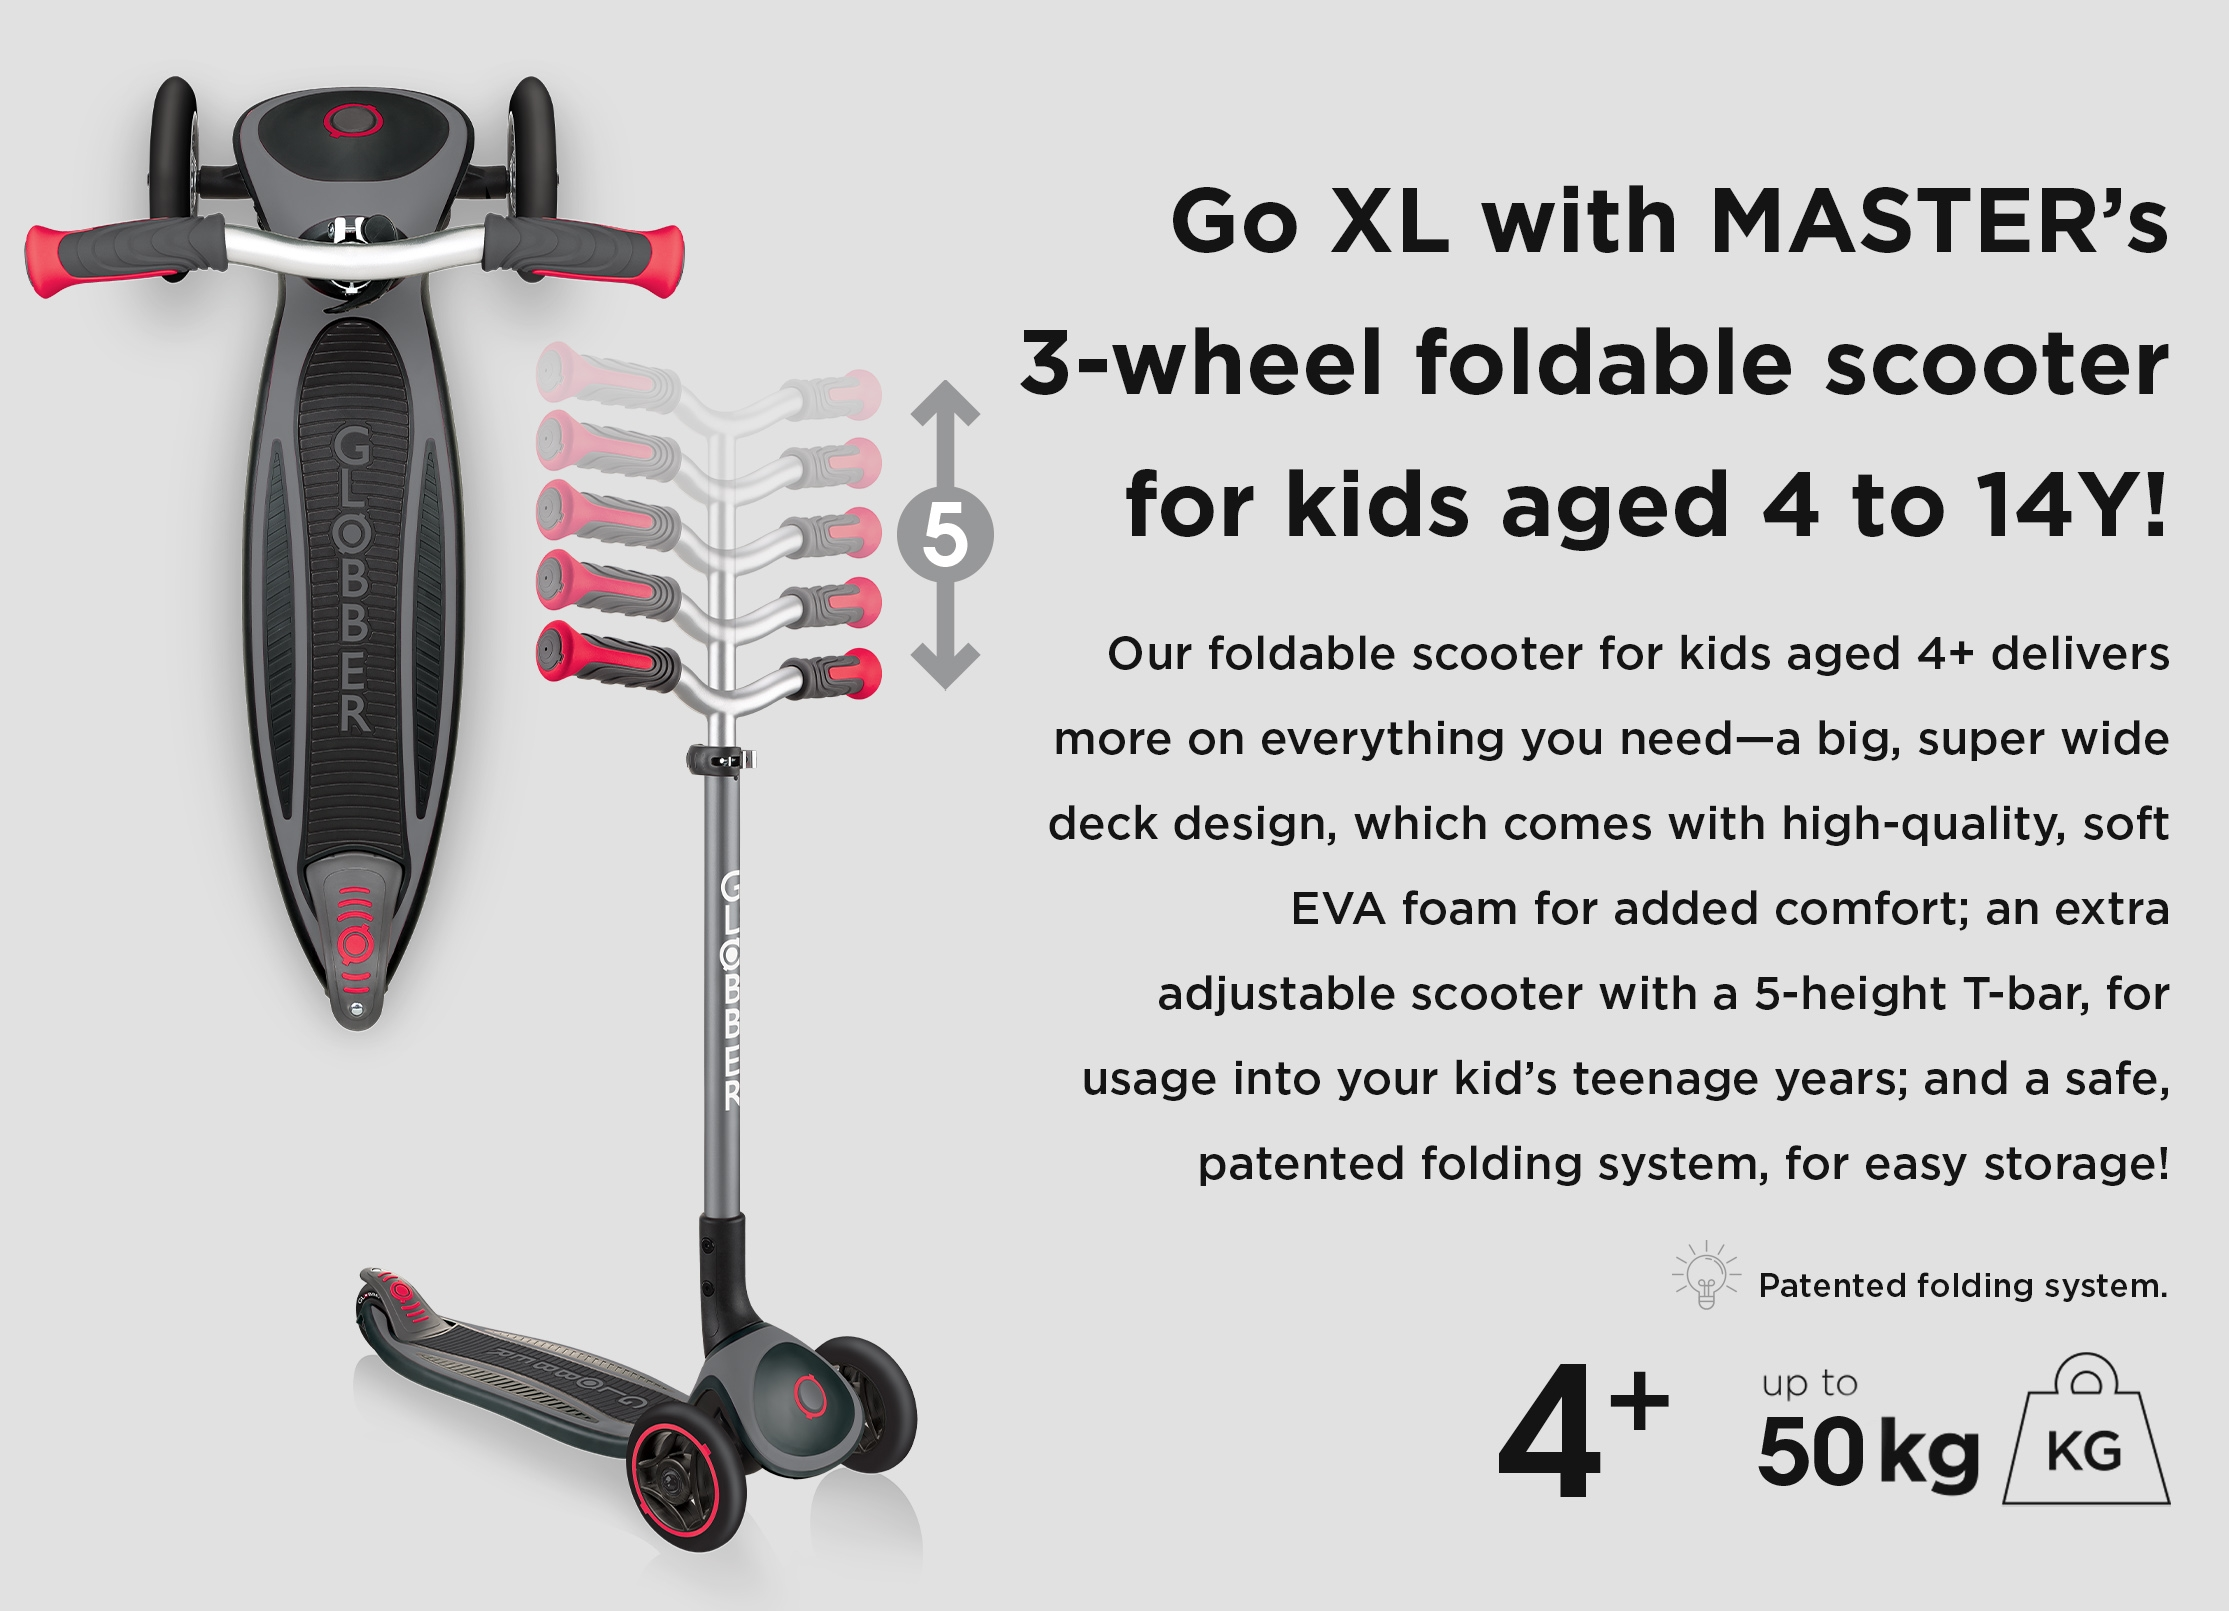 Globber-MASTER-3-wheel-foldable-scooters-for-kids-with-super-wide-deck-and-5-height-adjustable-T-bar